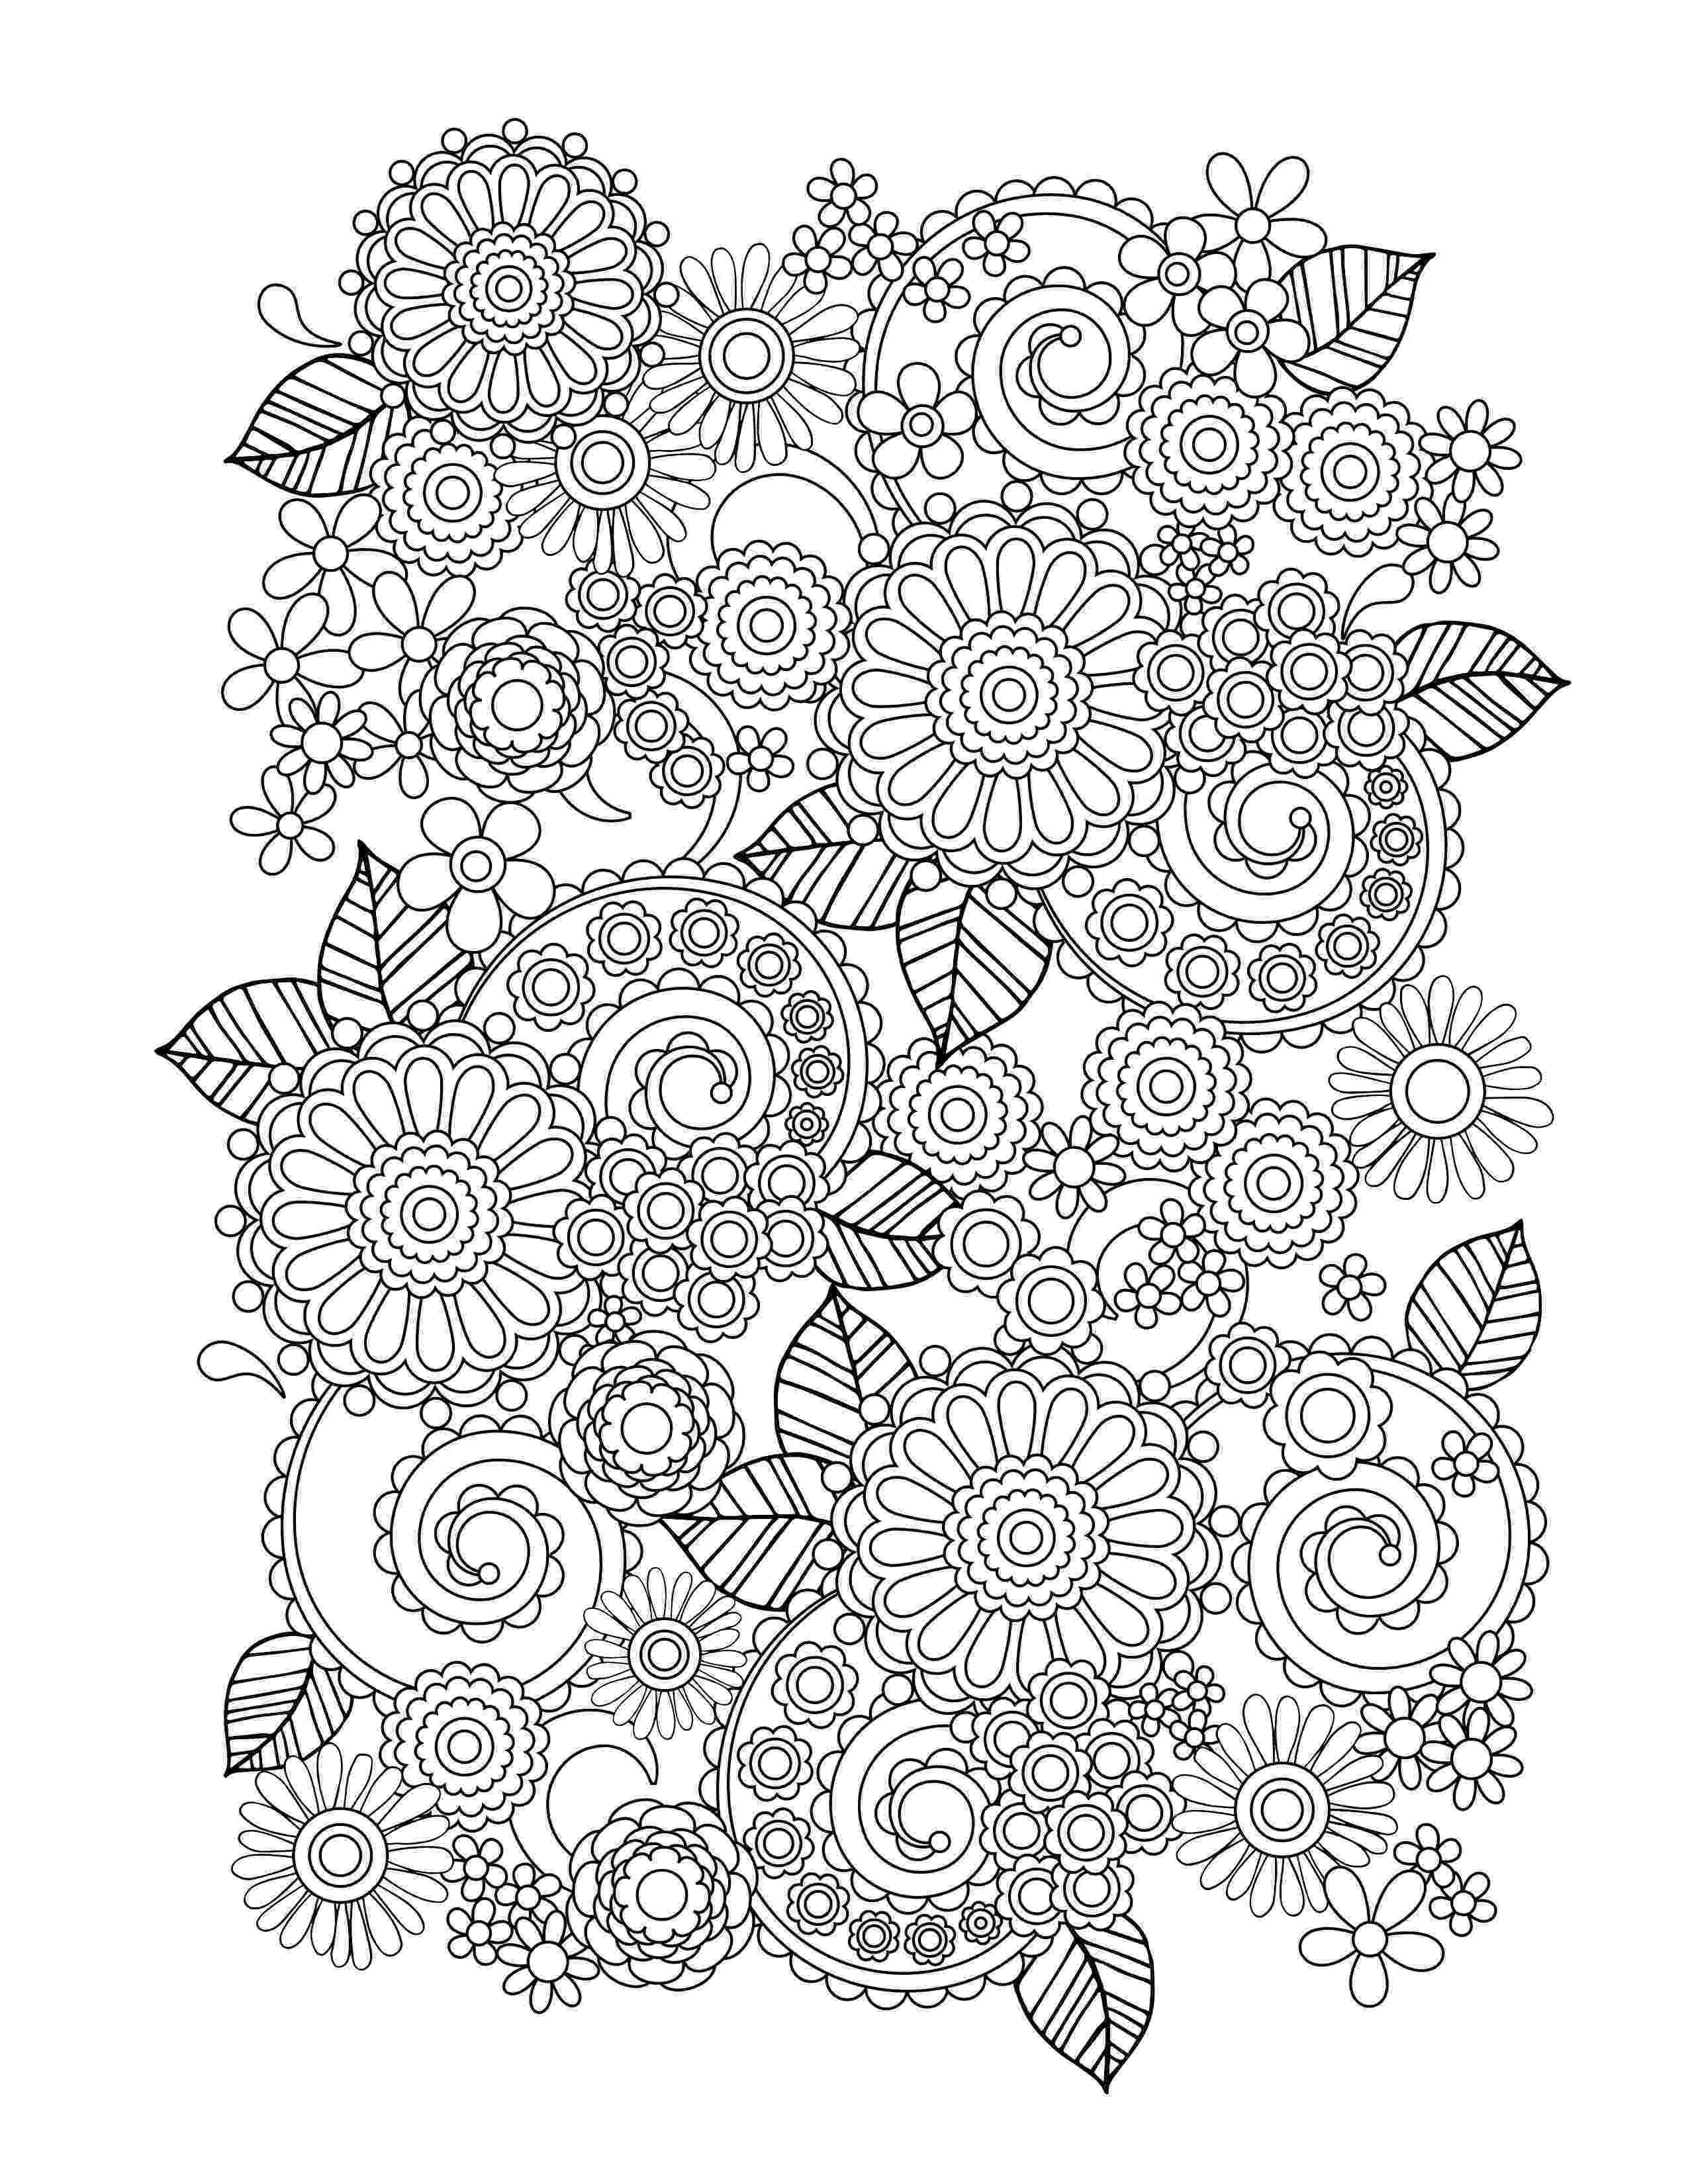 free printable coloring for adults 24 of the most creative free adult coloring pages kenal printable adults for free coloring